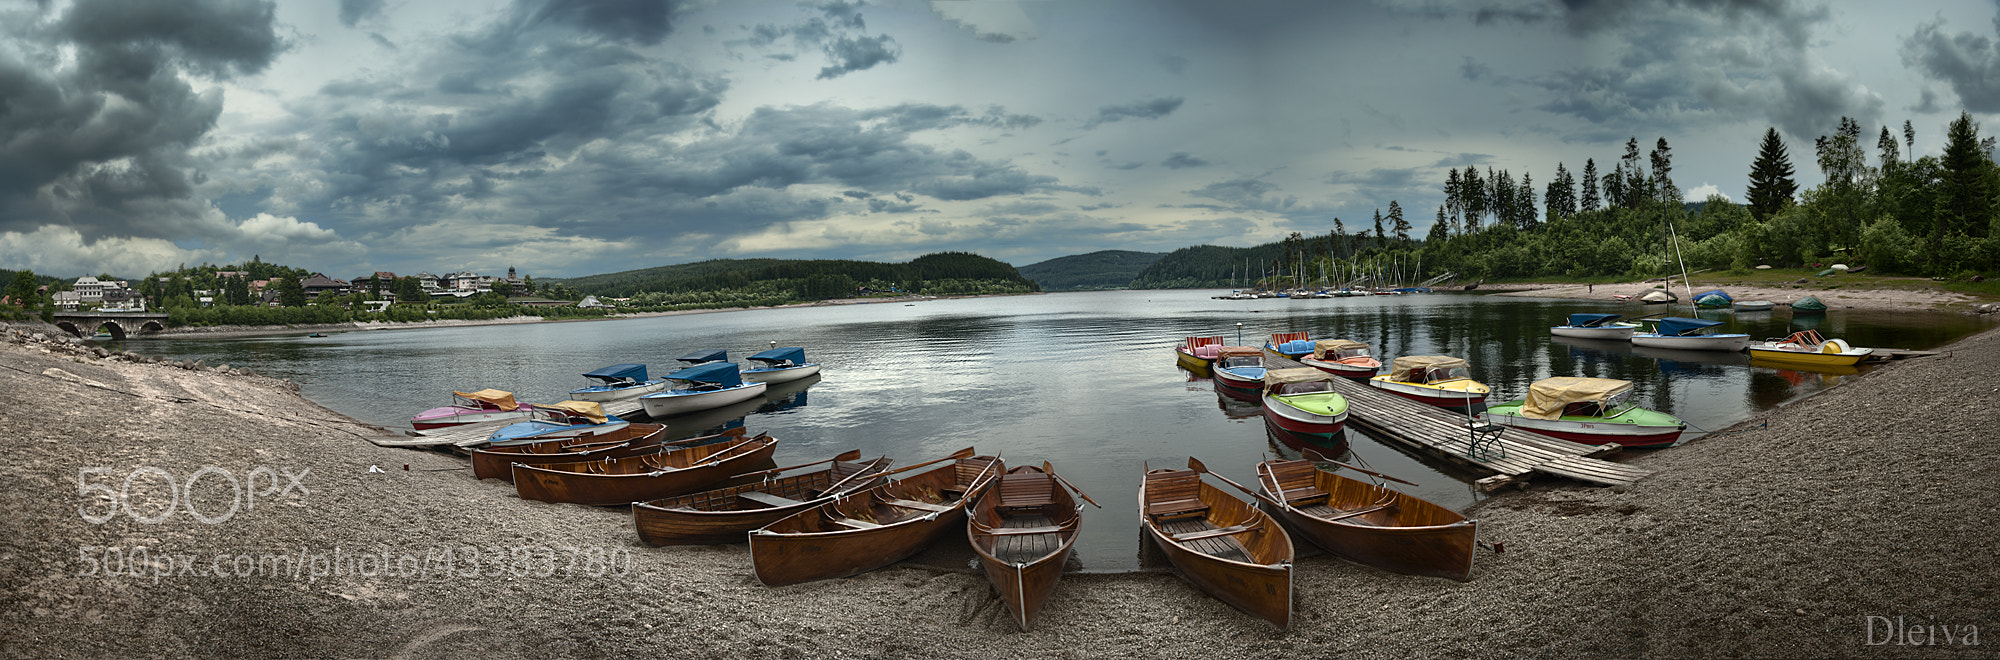 Photograph Schluchsee (Black Forest, Germany) by Domingo Leiva on 500px